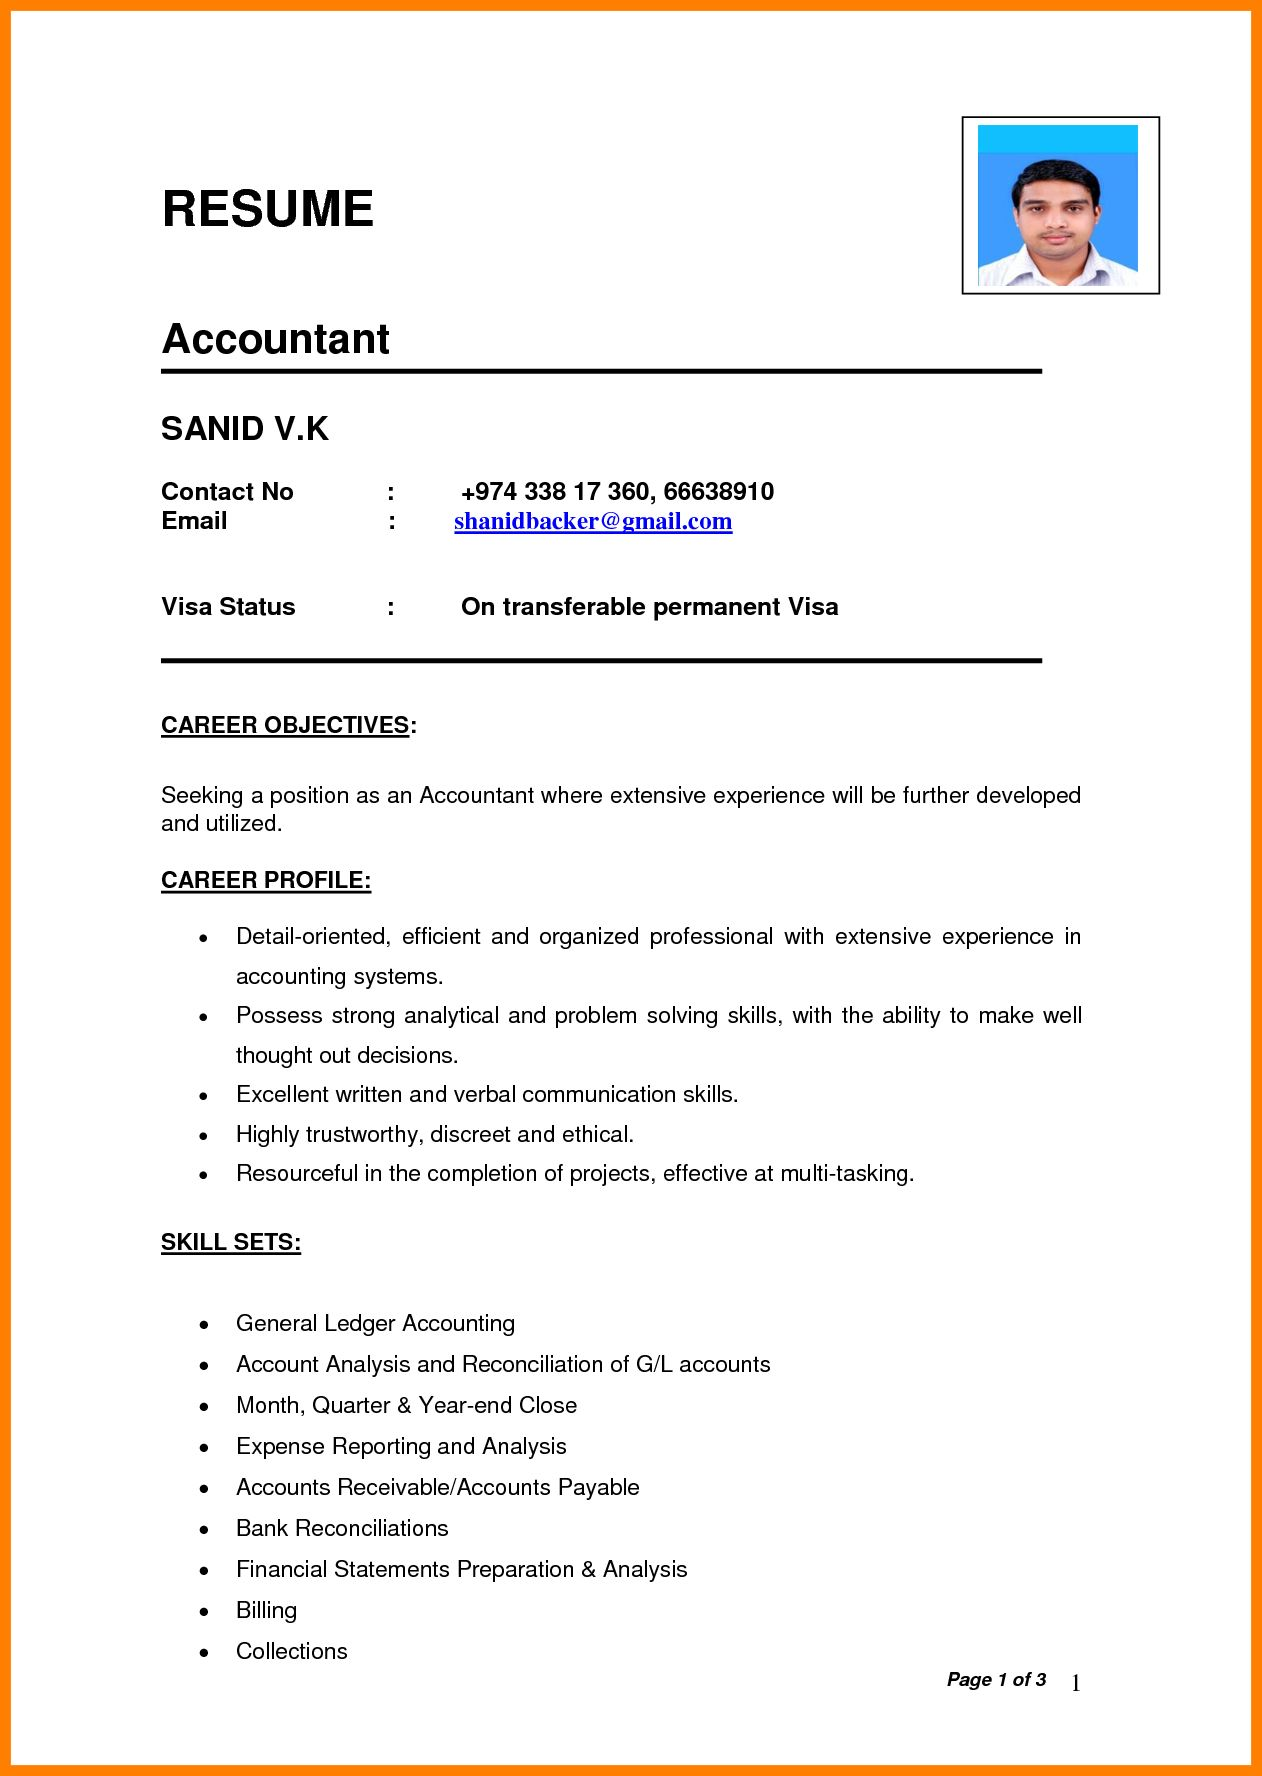 65 Cool Photography Of Basic Resume Examples India Accountant Resume Resume Template Word Best Resume Format